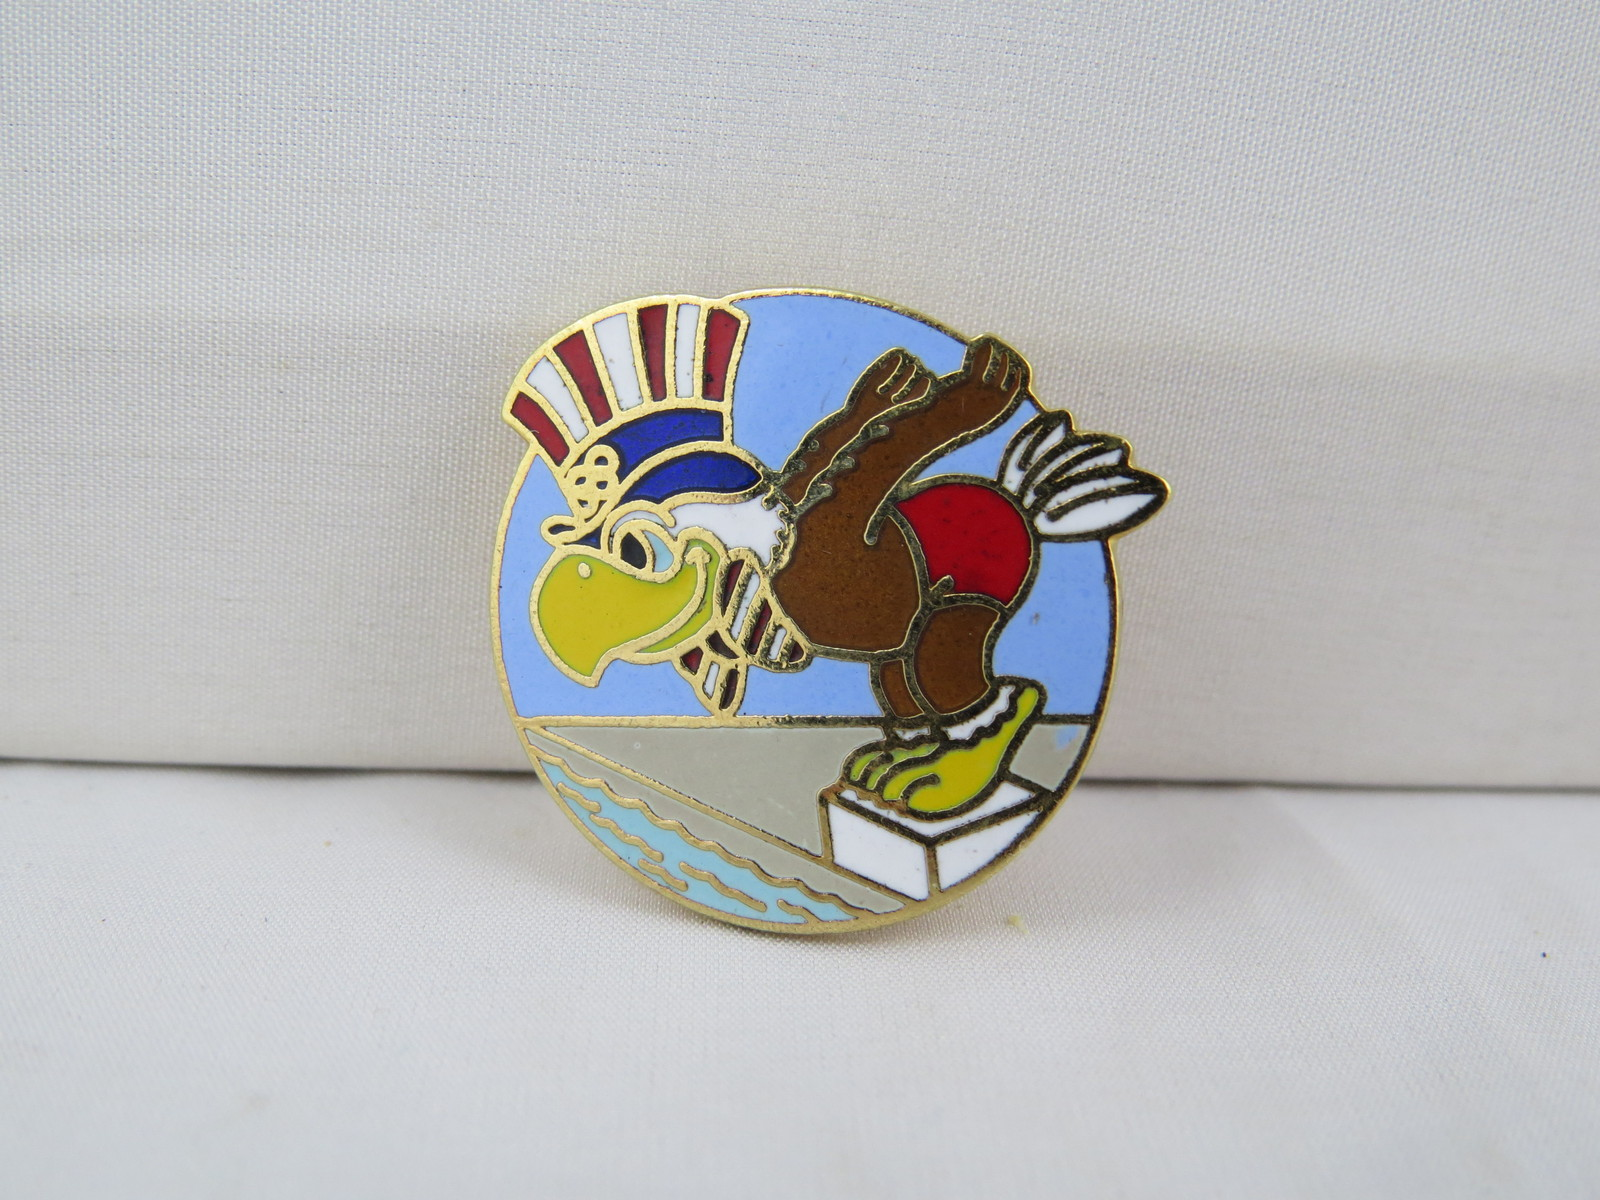 1984 Summer Olympic Games Pin - Swimming Event - Featuring Sam the Mascot